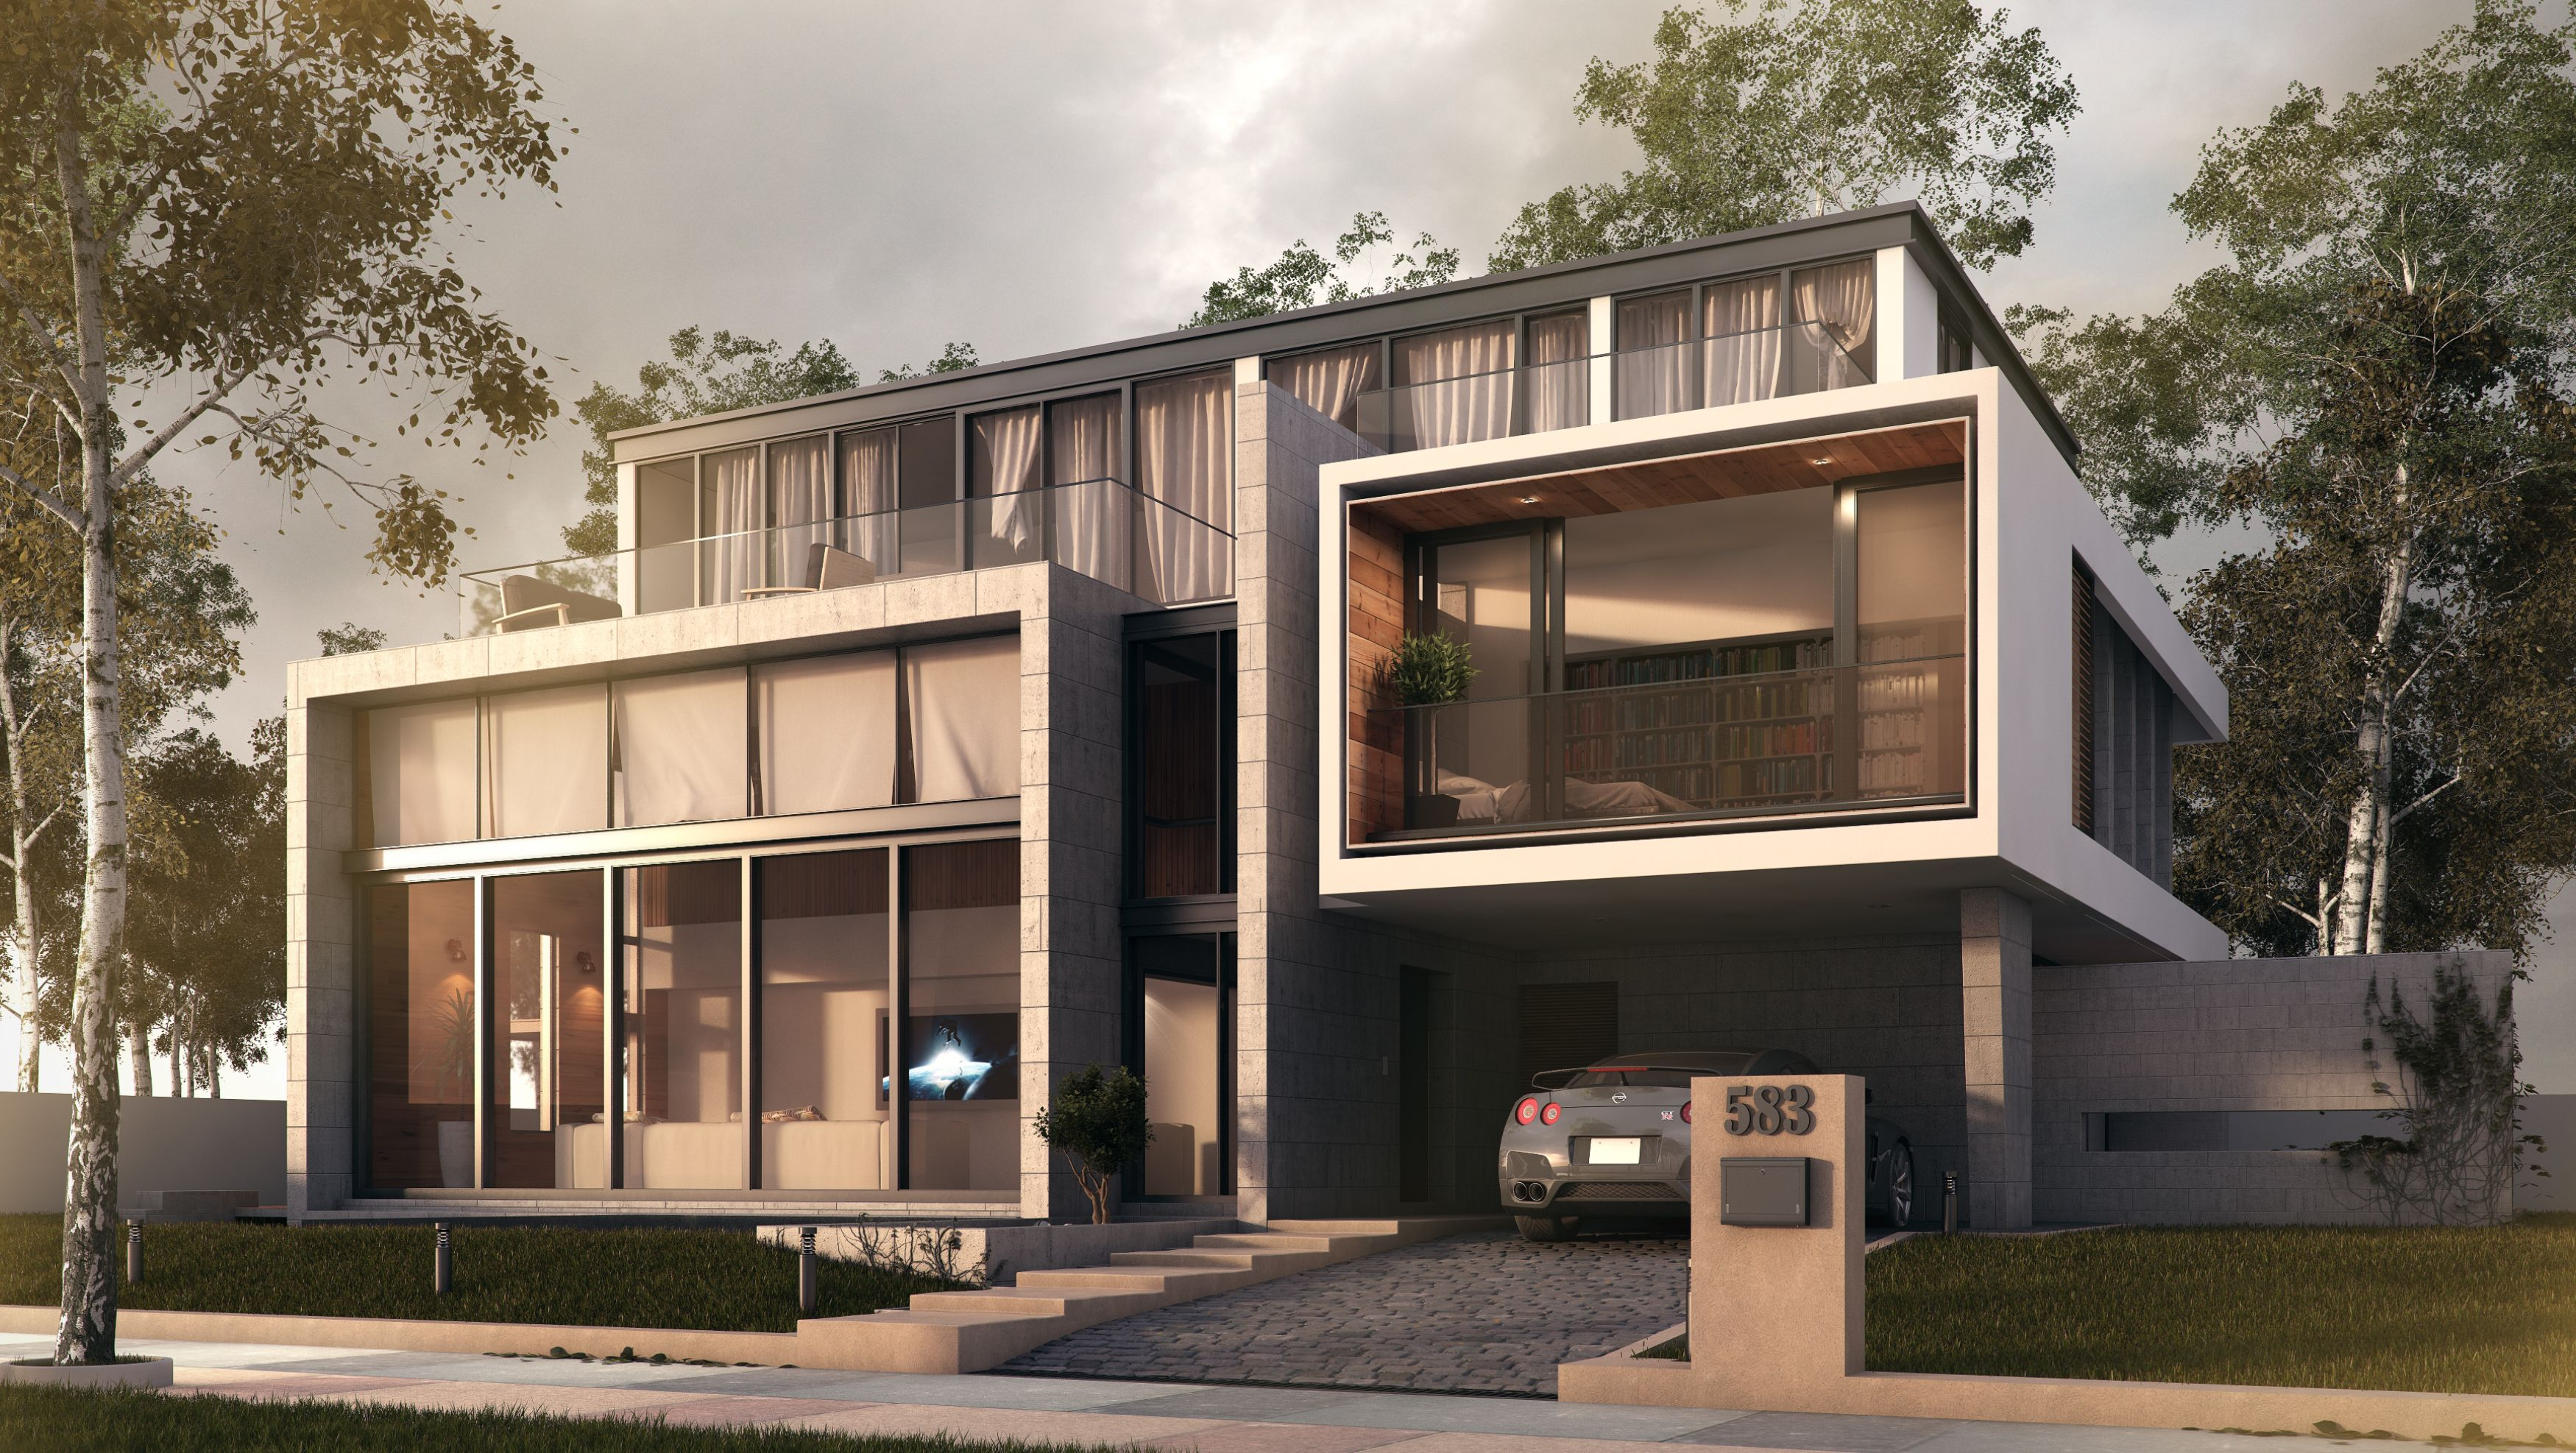 3ds max vray photoshop architecture 3ds max - Vray realistic render settings exterior ...